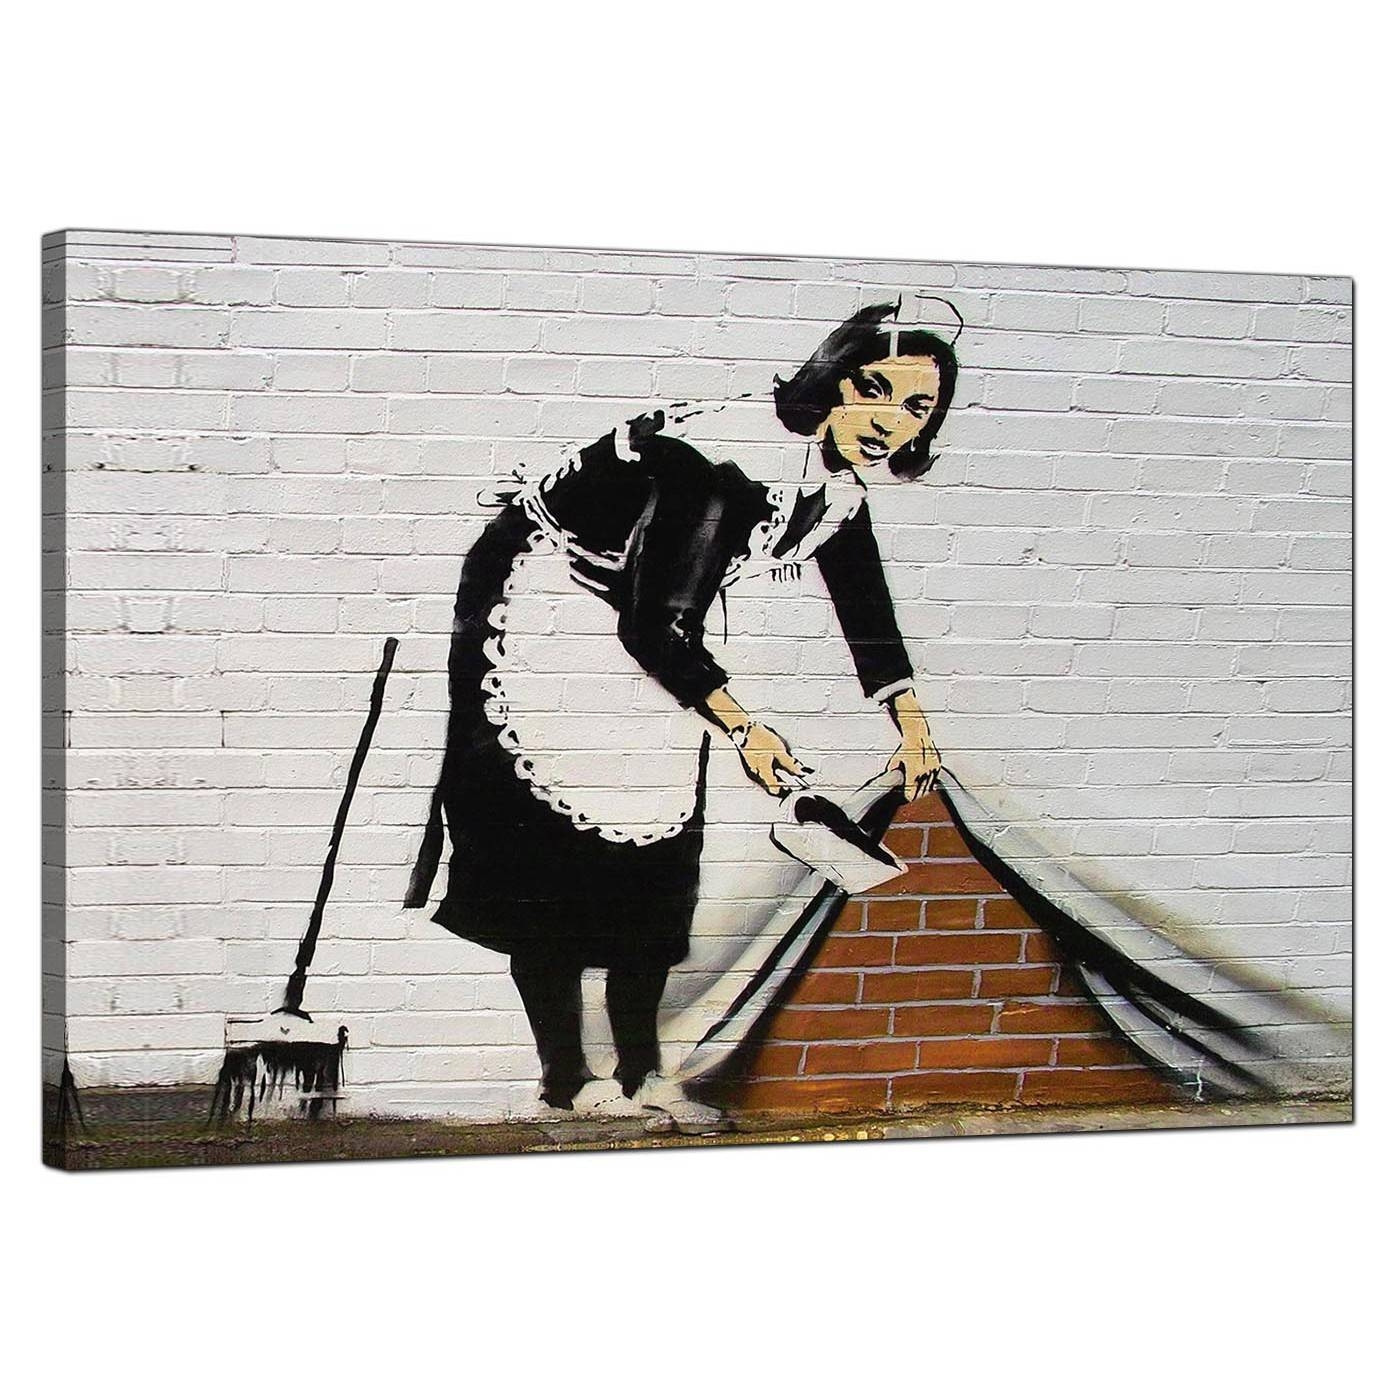 Banksy Canvas Prints – Sweeping It Under The Carpet Pertaining To Newest Banksy Wall Art Canvas (View 8 of 20)